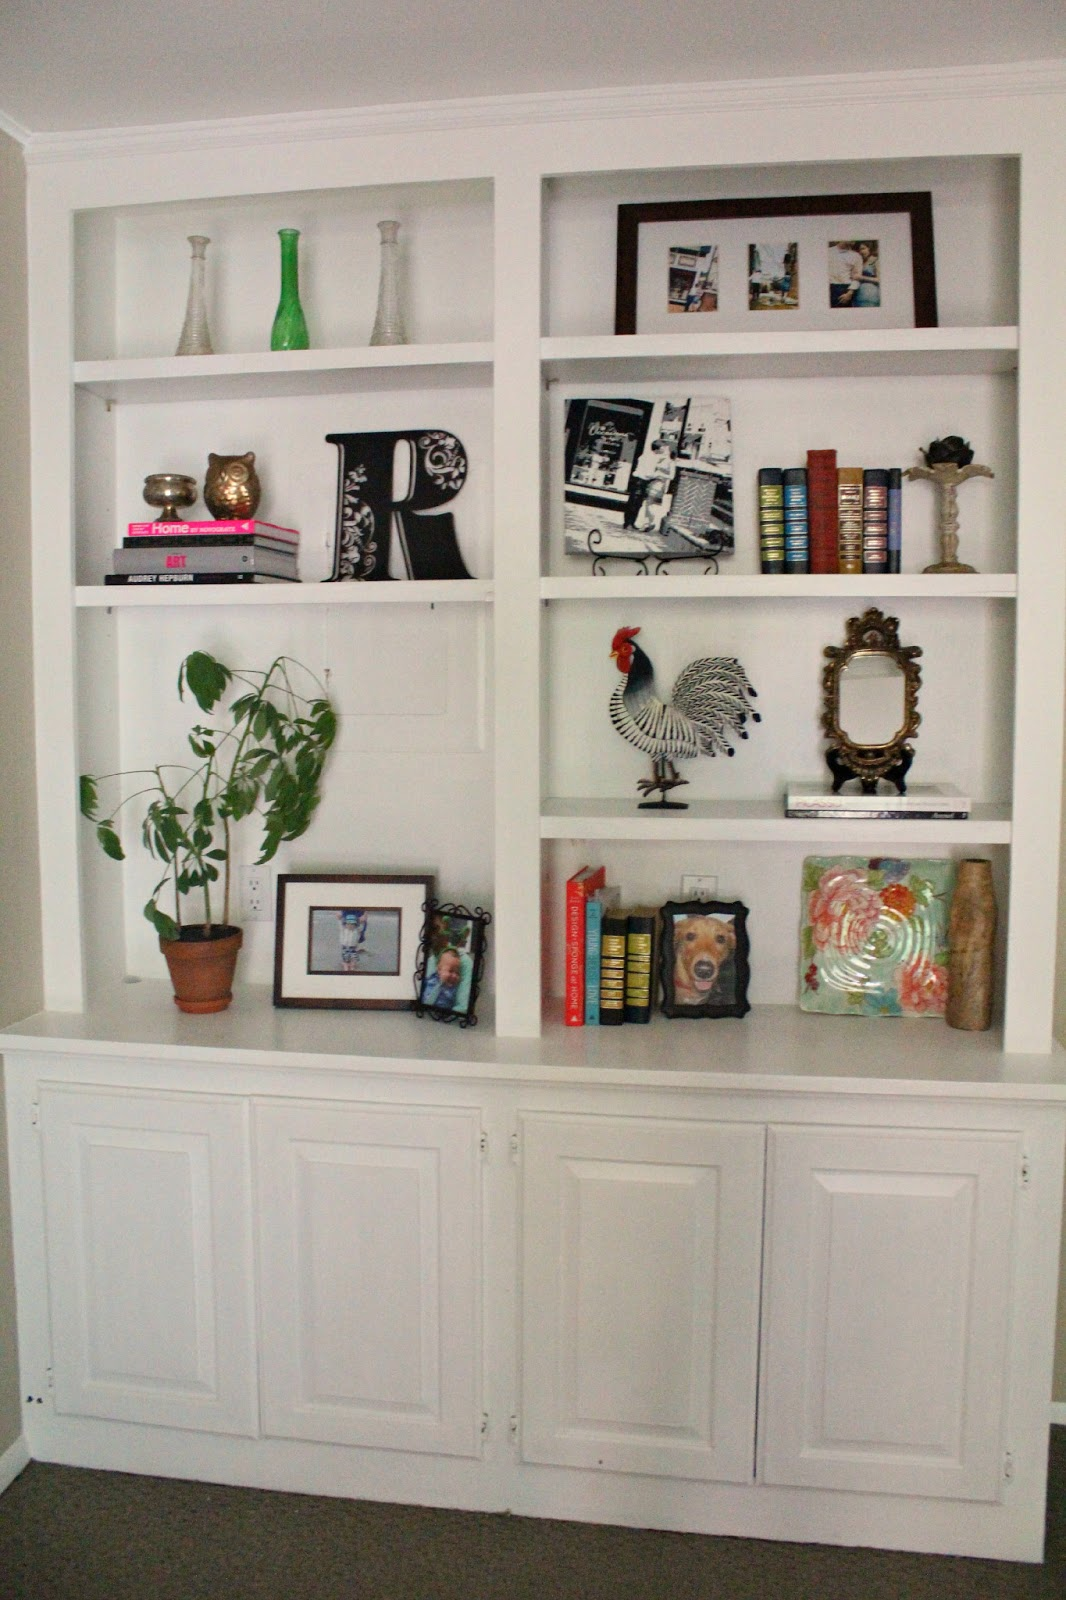 Ten june my living room built in bookshelves are styled Built in shelves living room